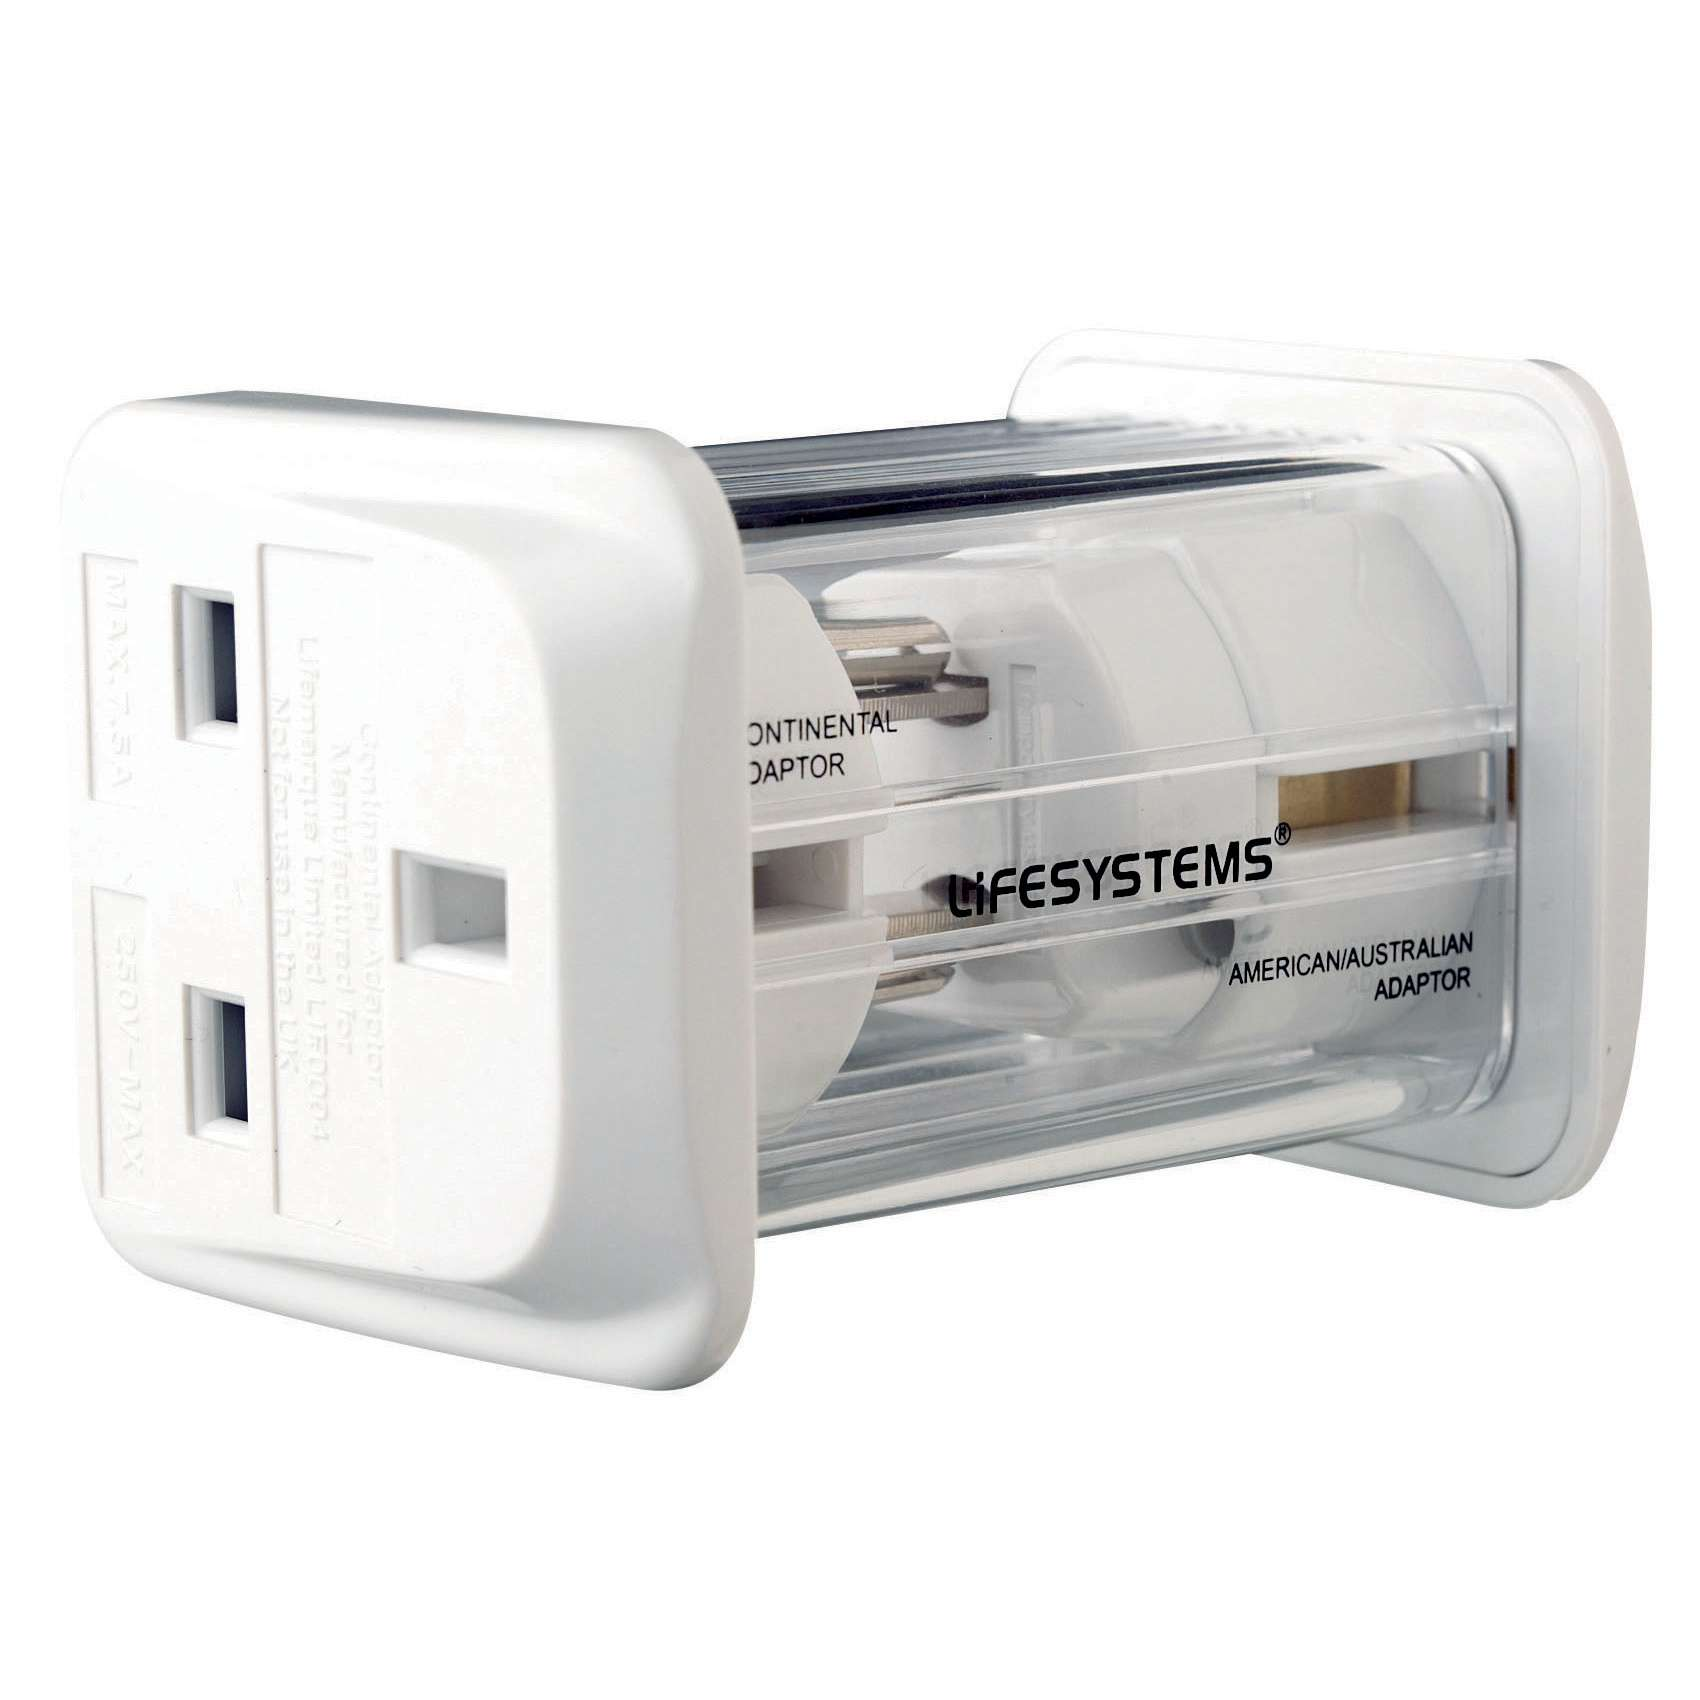 LIFESYSTEMS Worldwide Adaptor